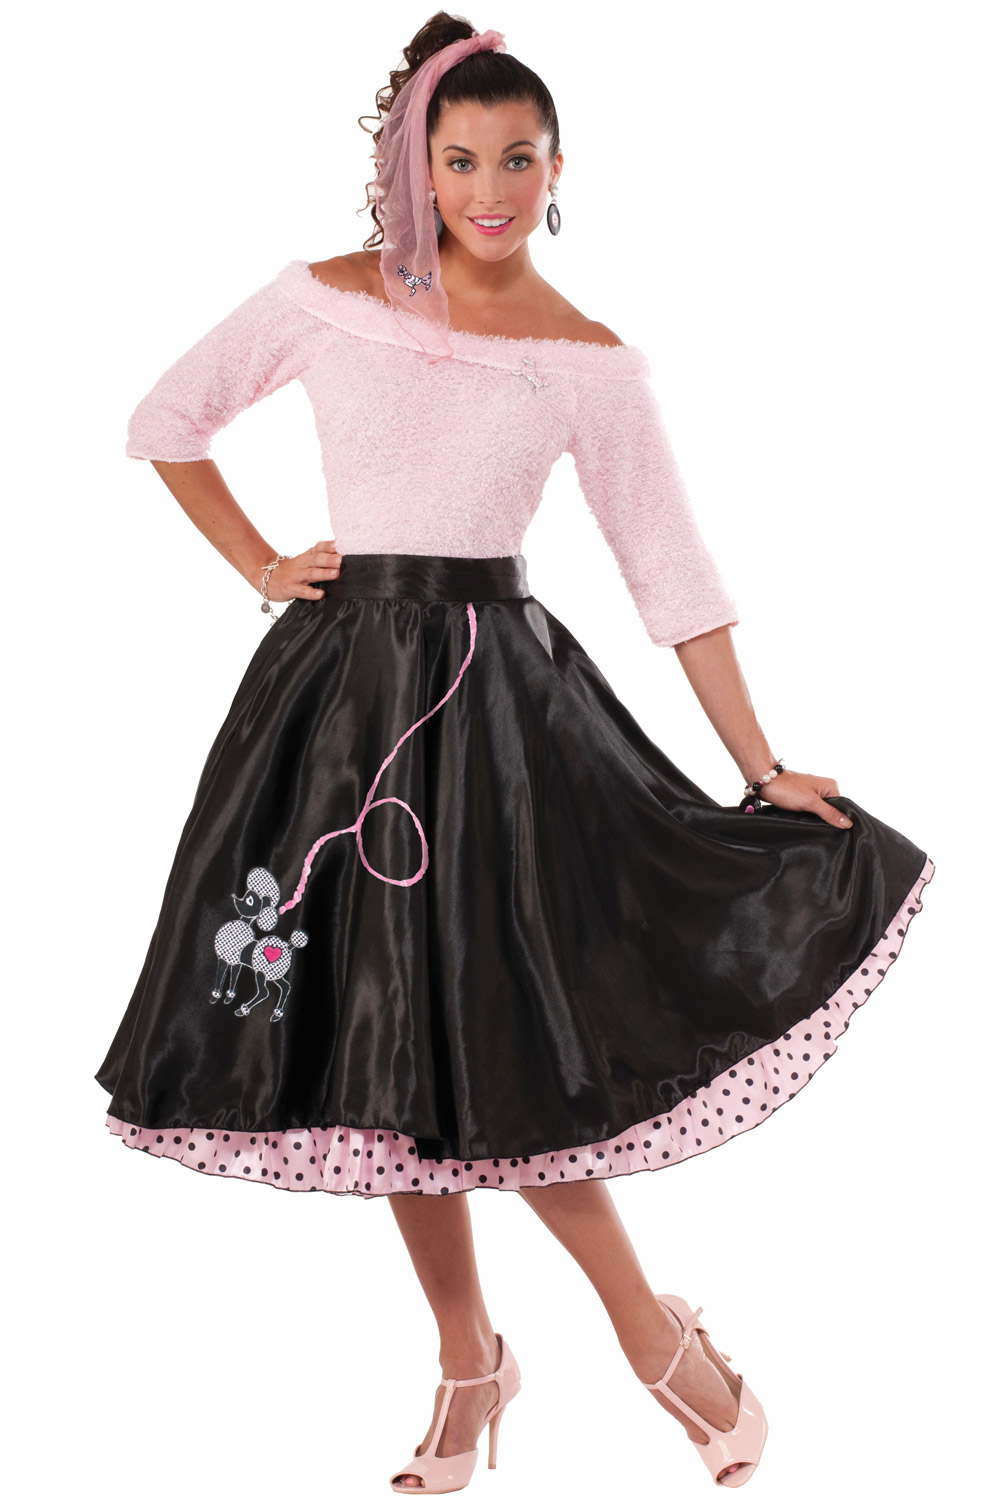 The 50 Best Fashion Tips Of All Time: Flirty 50s Poodle Skirt Adult Costume